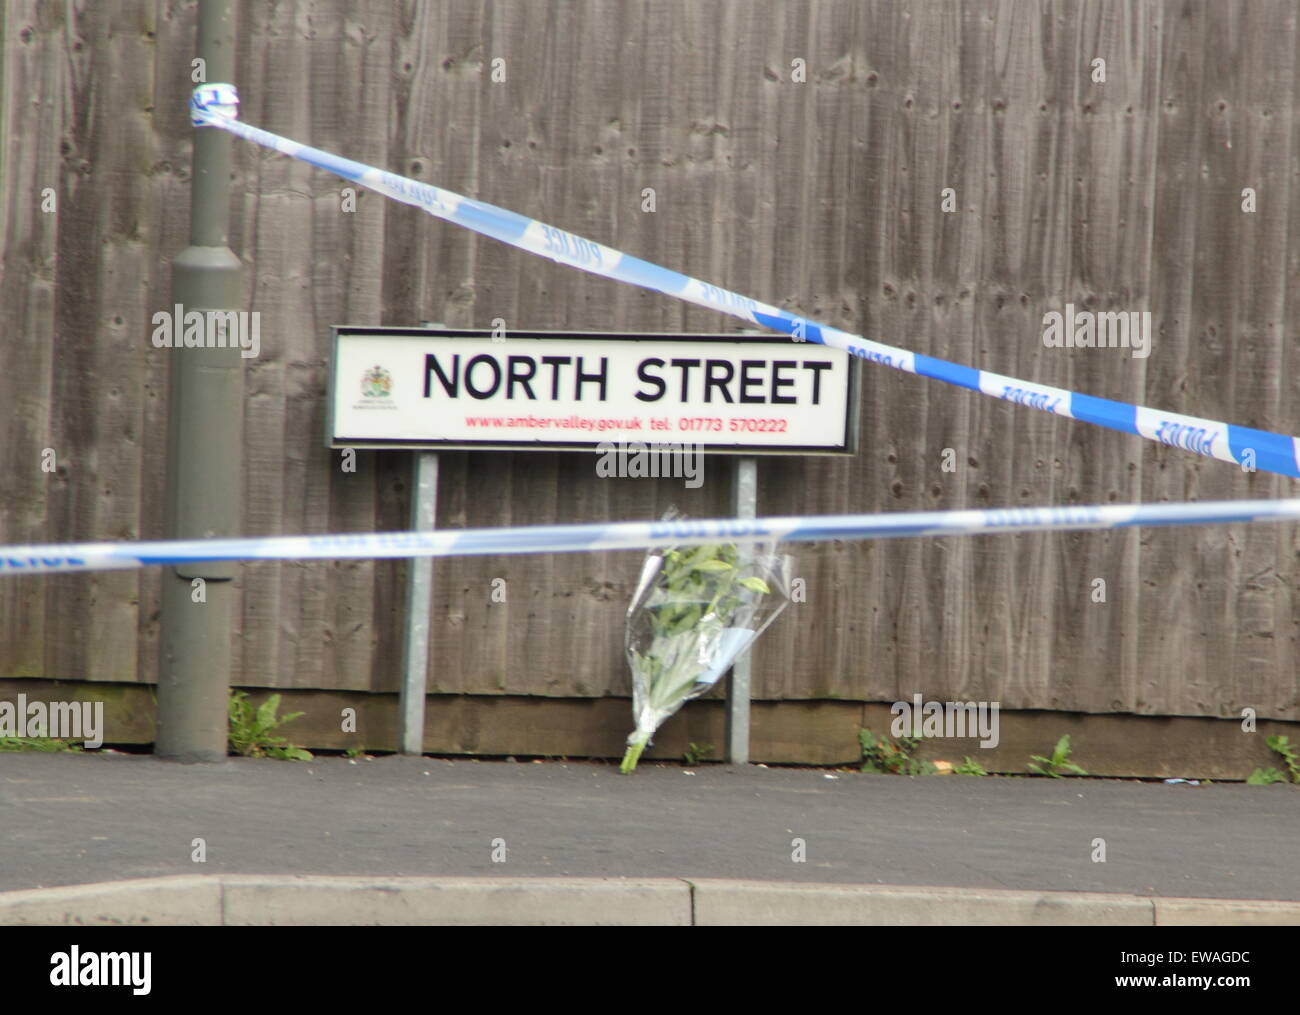 Langley Mill, Derbyshire. 21 June 2015. A floral tribute is left on North Street, Langley Mill following a house - Stock Image